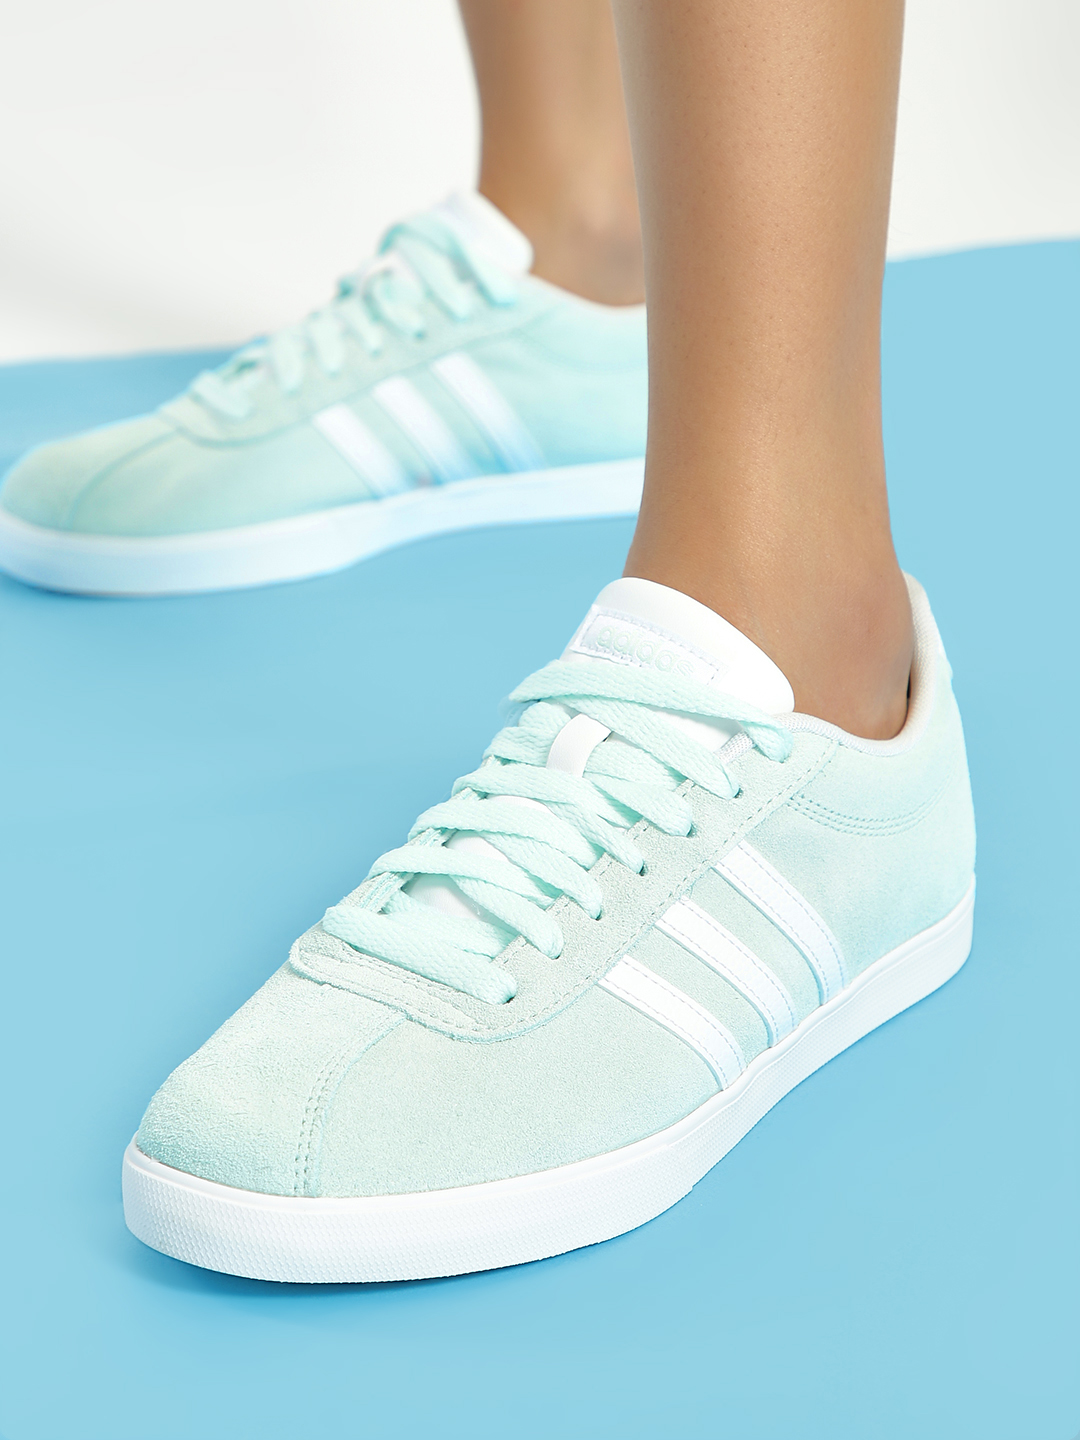 Adidas Green Courtset Shoes 1